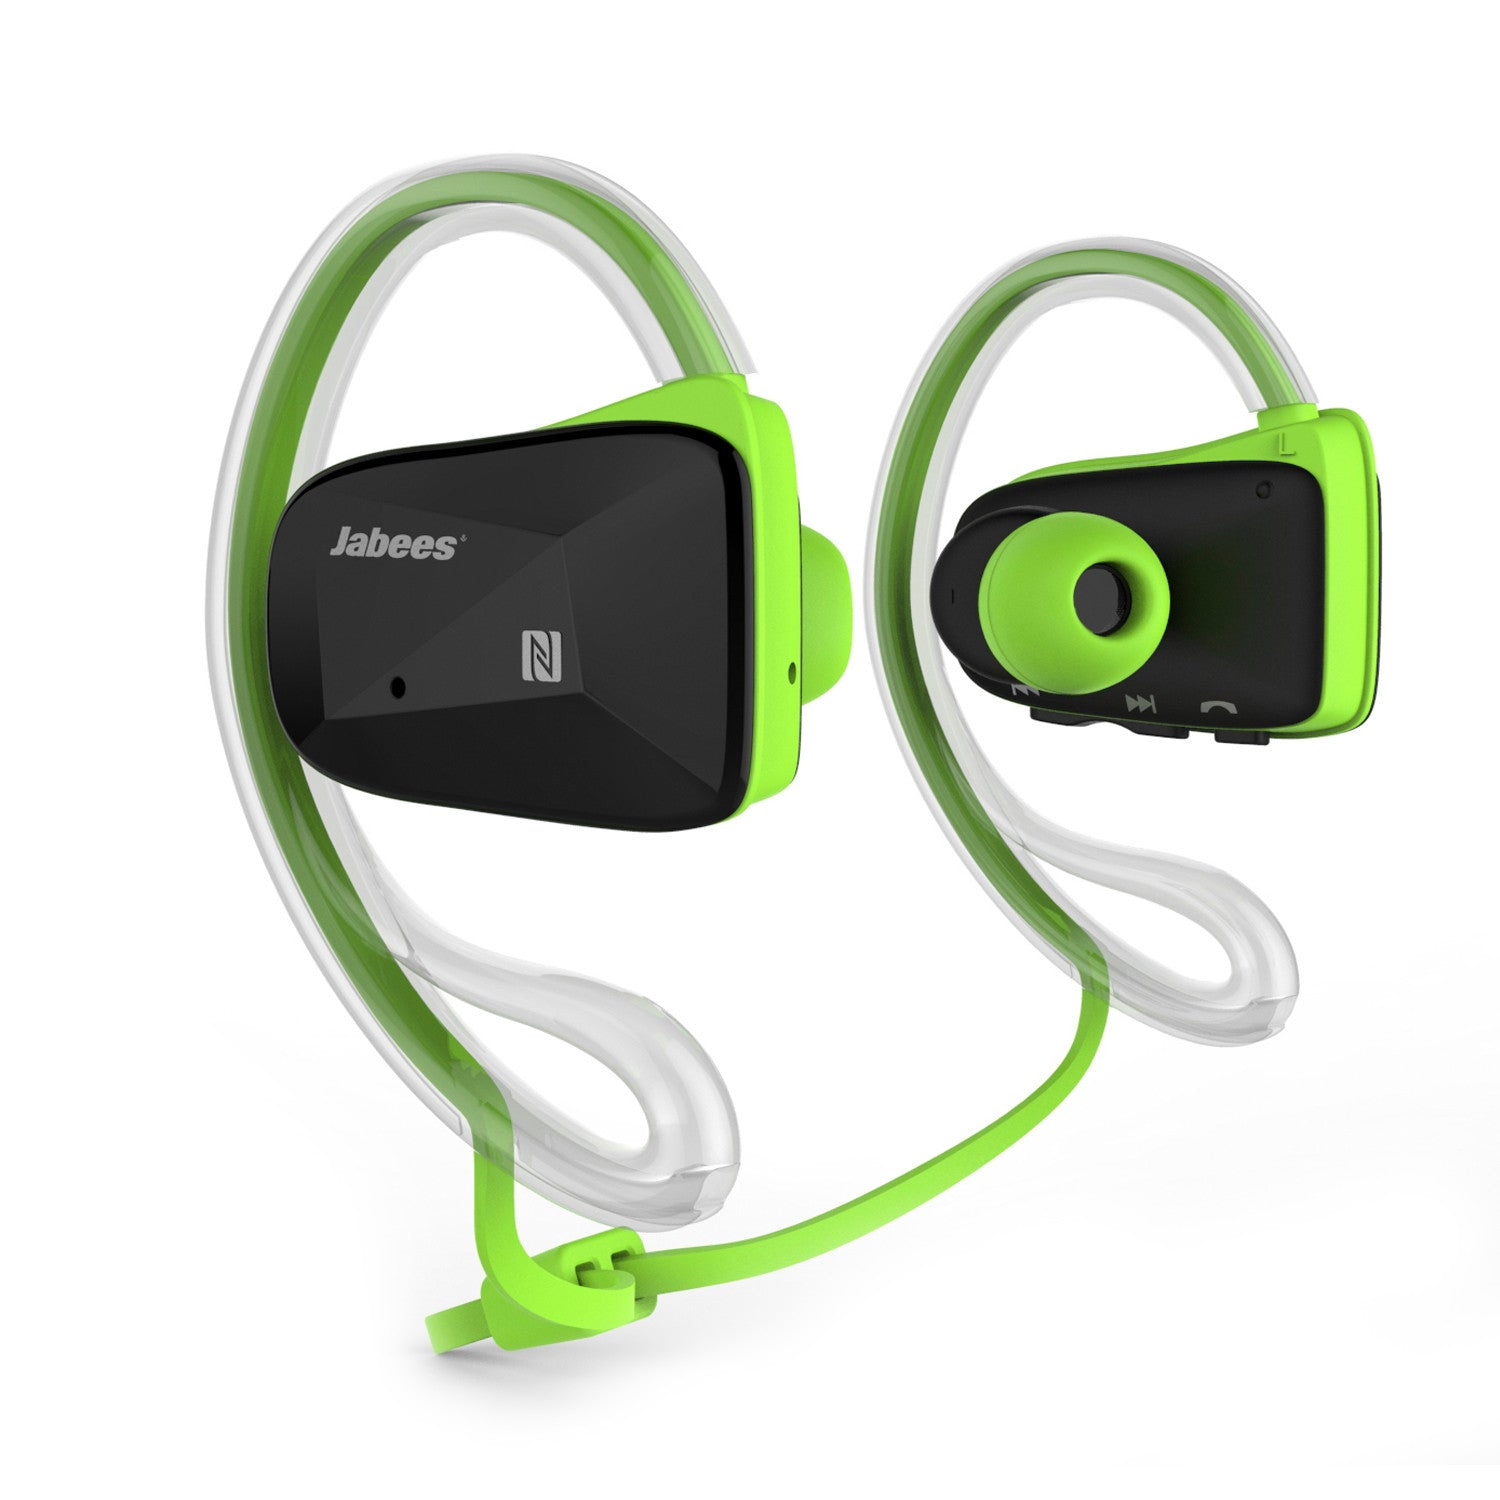 Image of   Jabees Bsport trådløst bluetooth headset - grøn